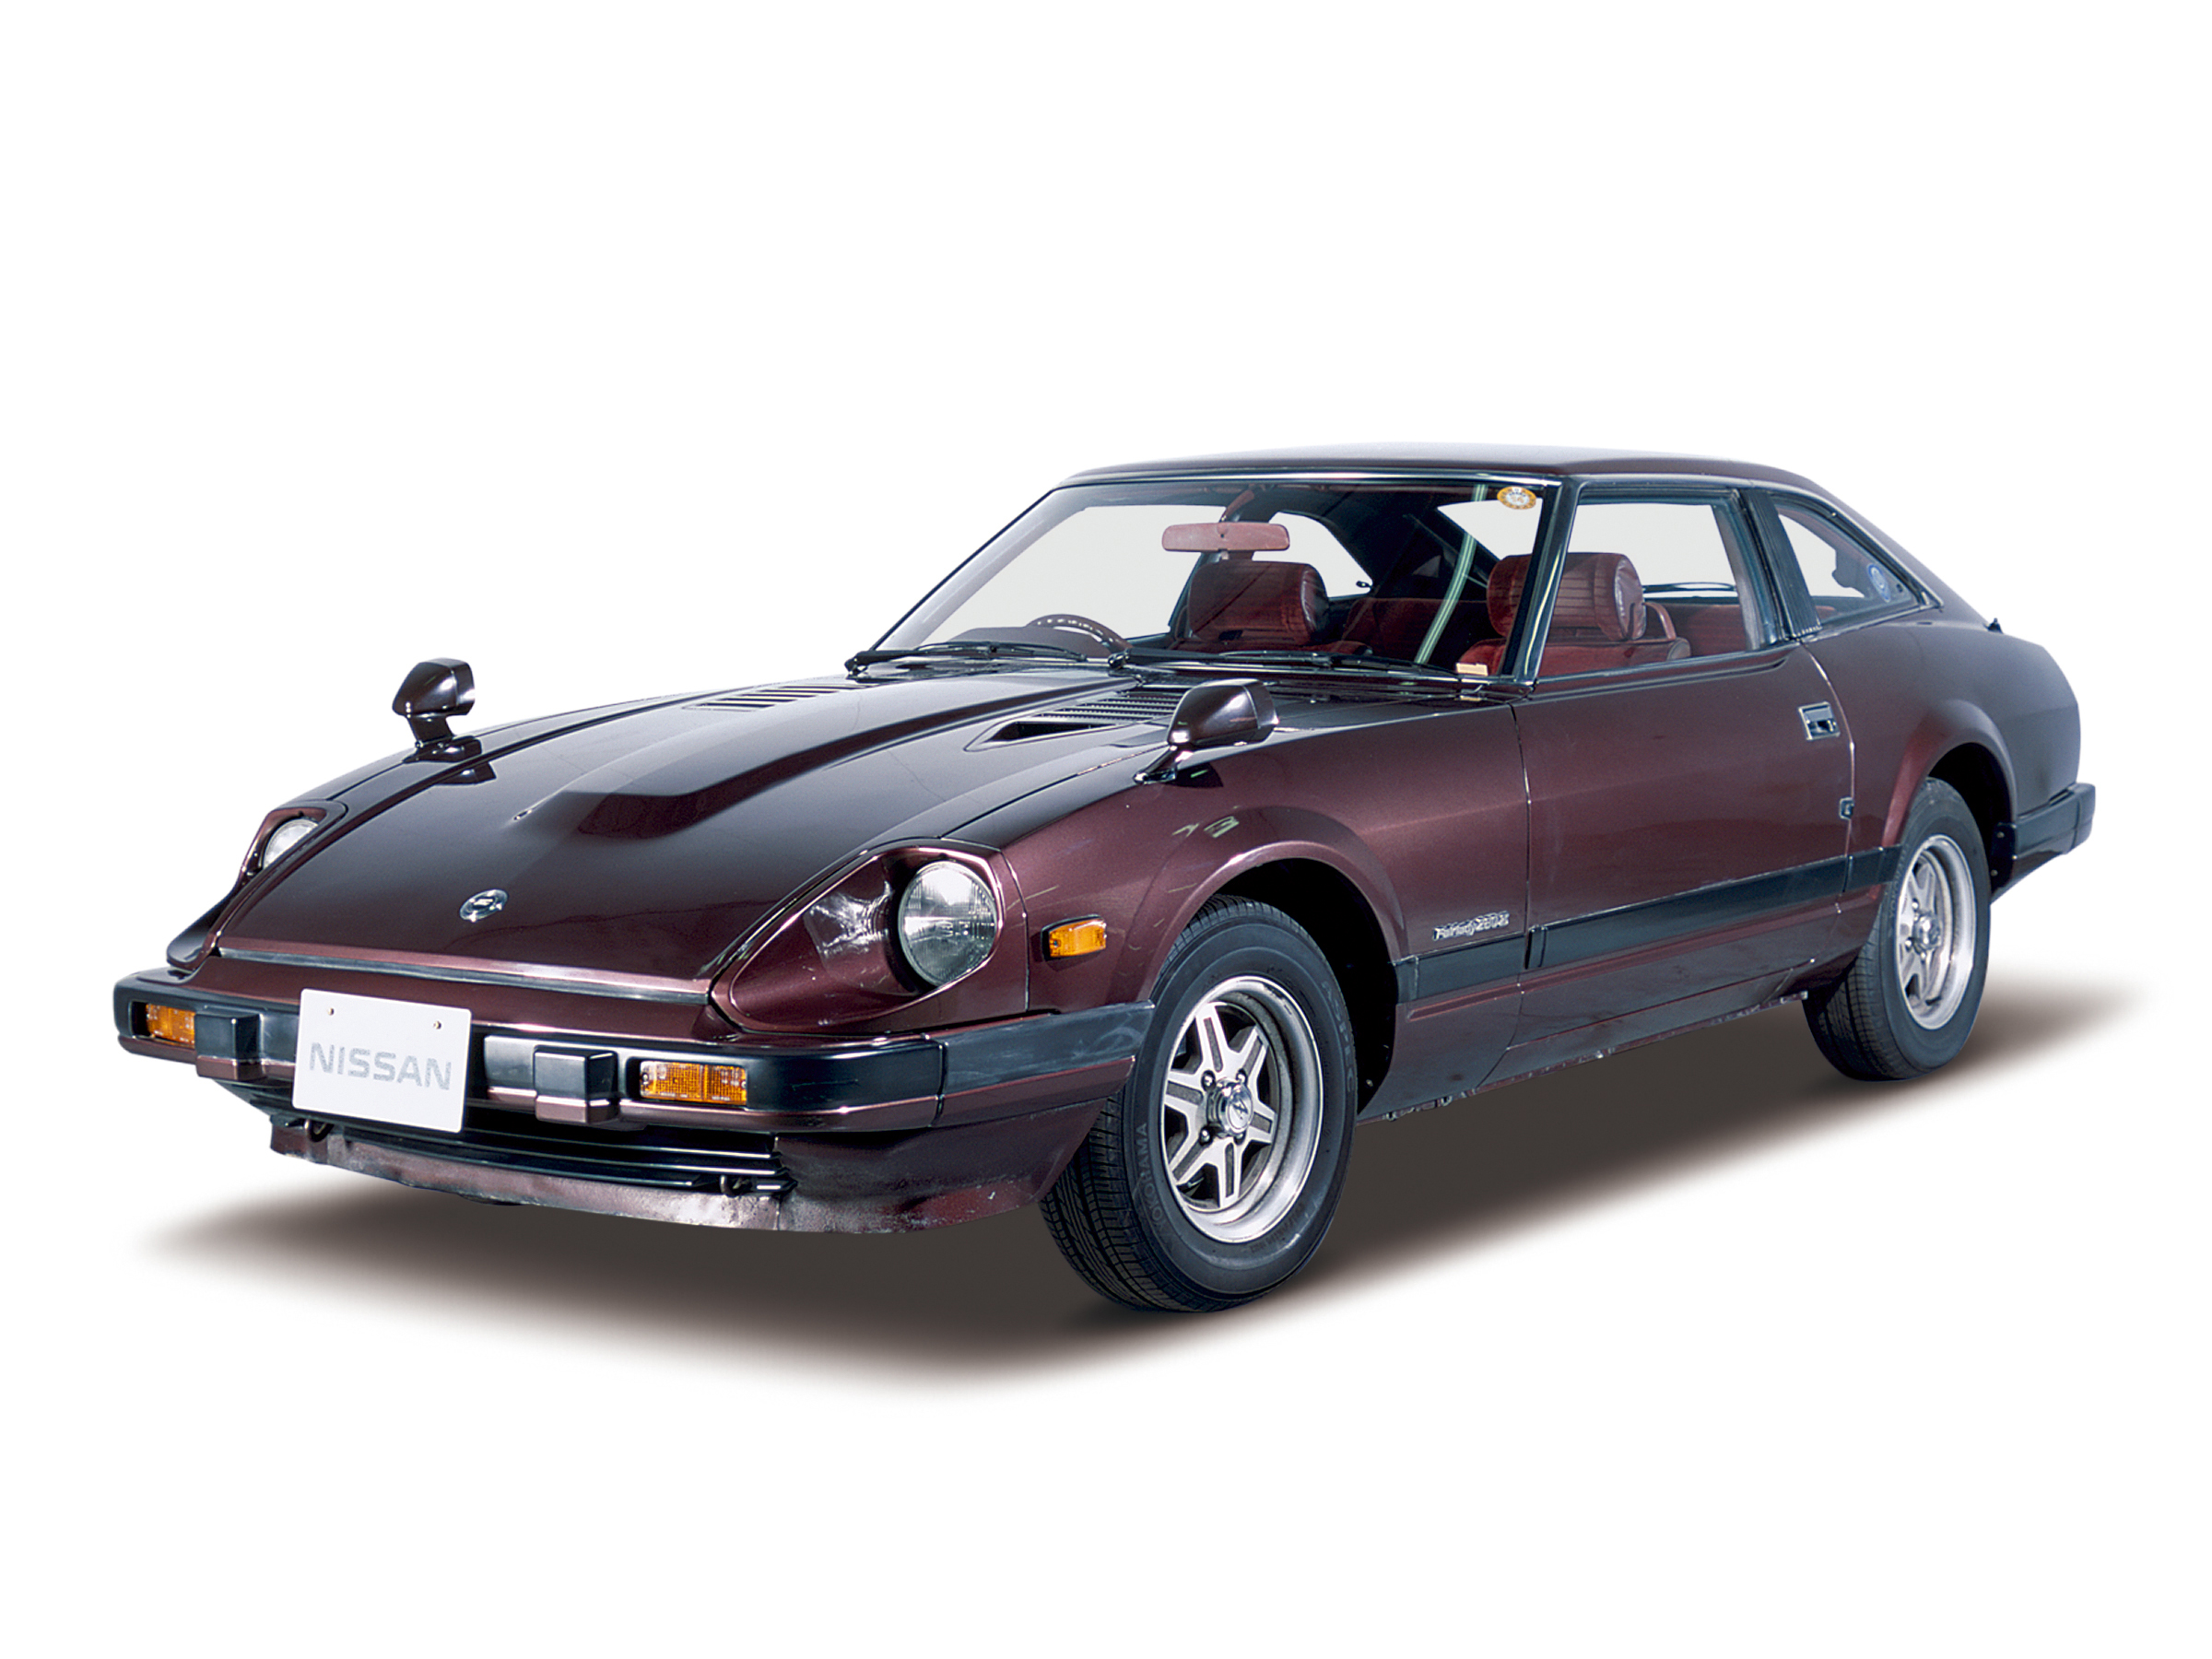 Nissan Heritage Collection Fairlady 280z T